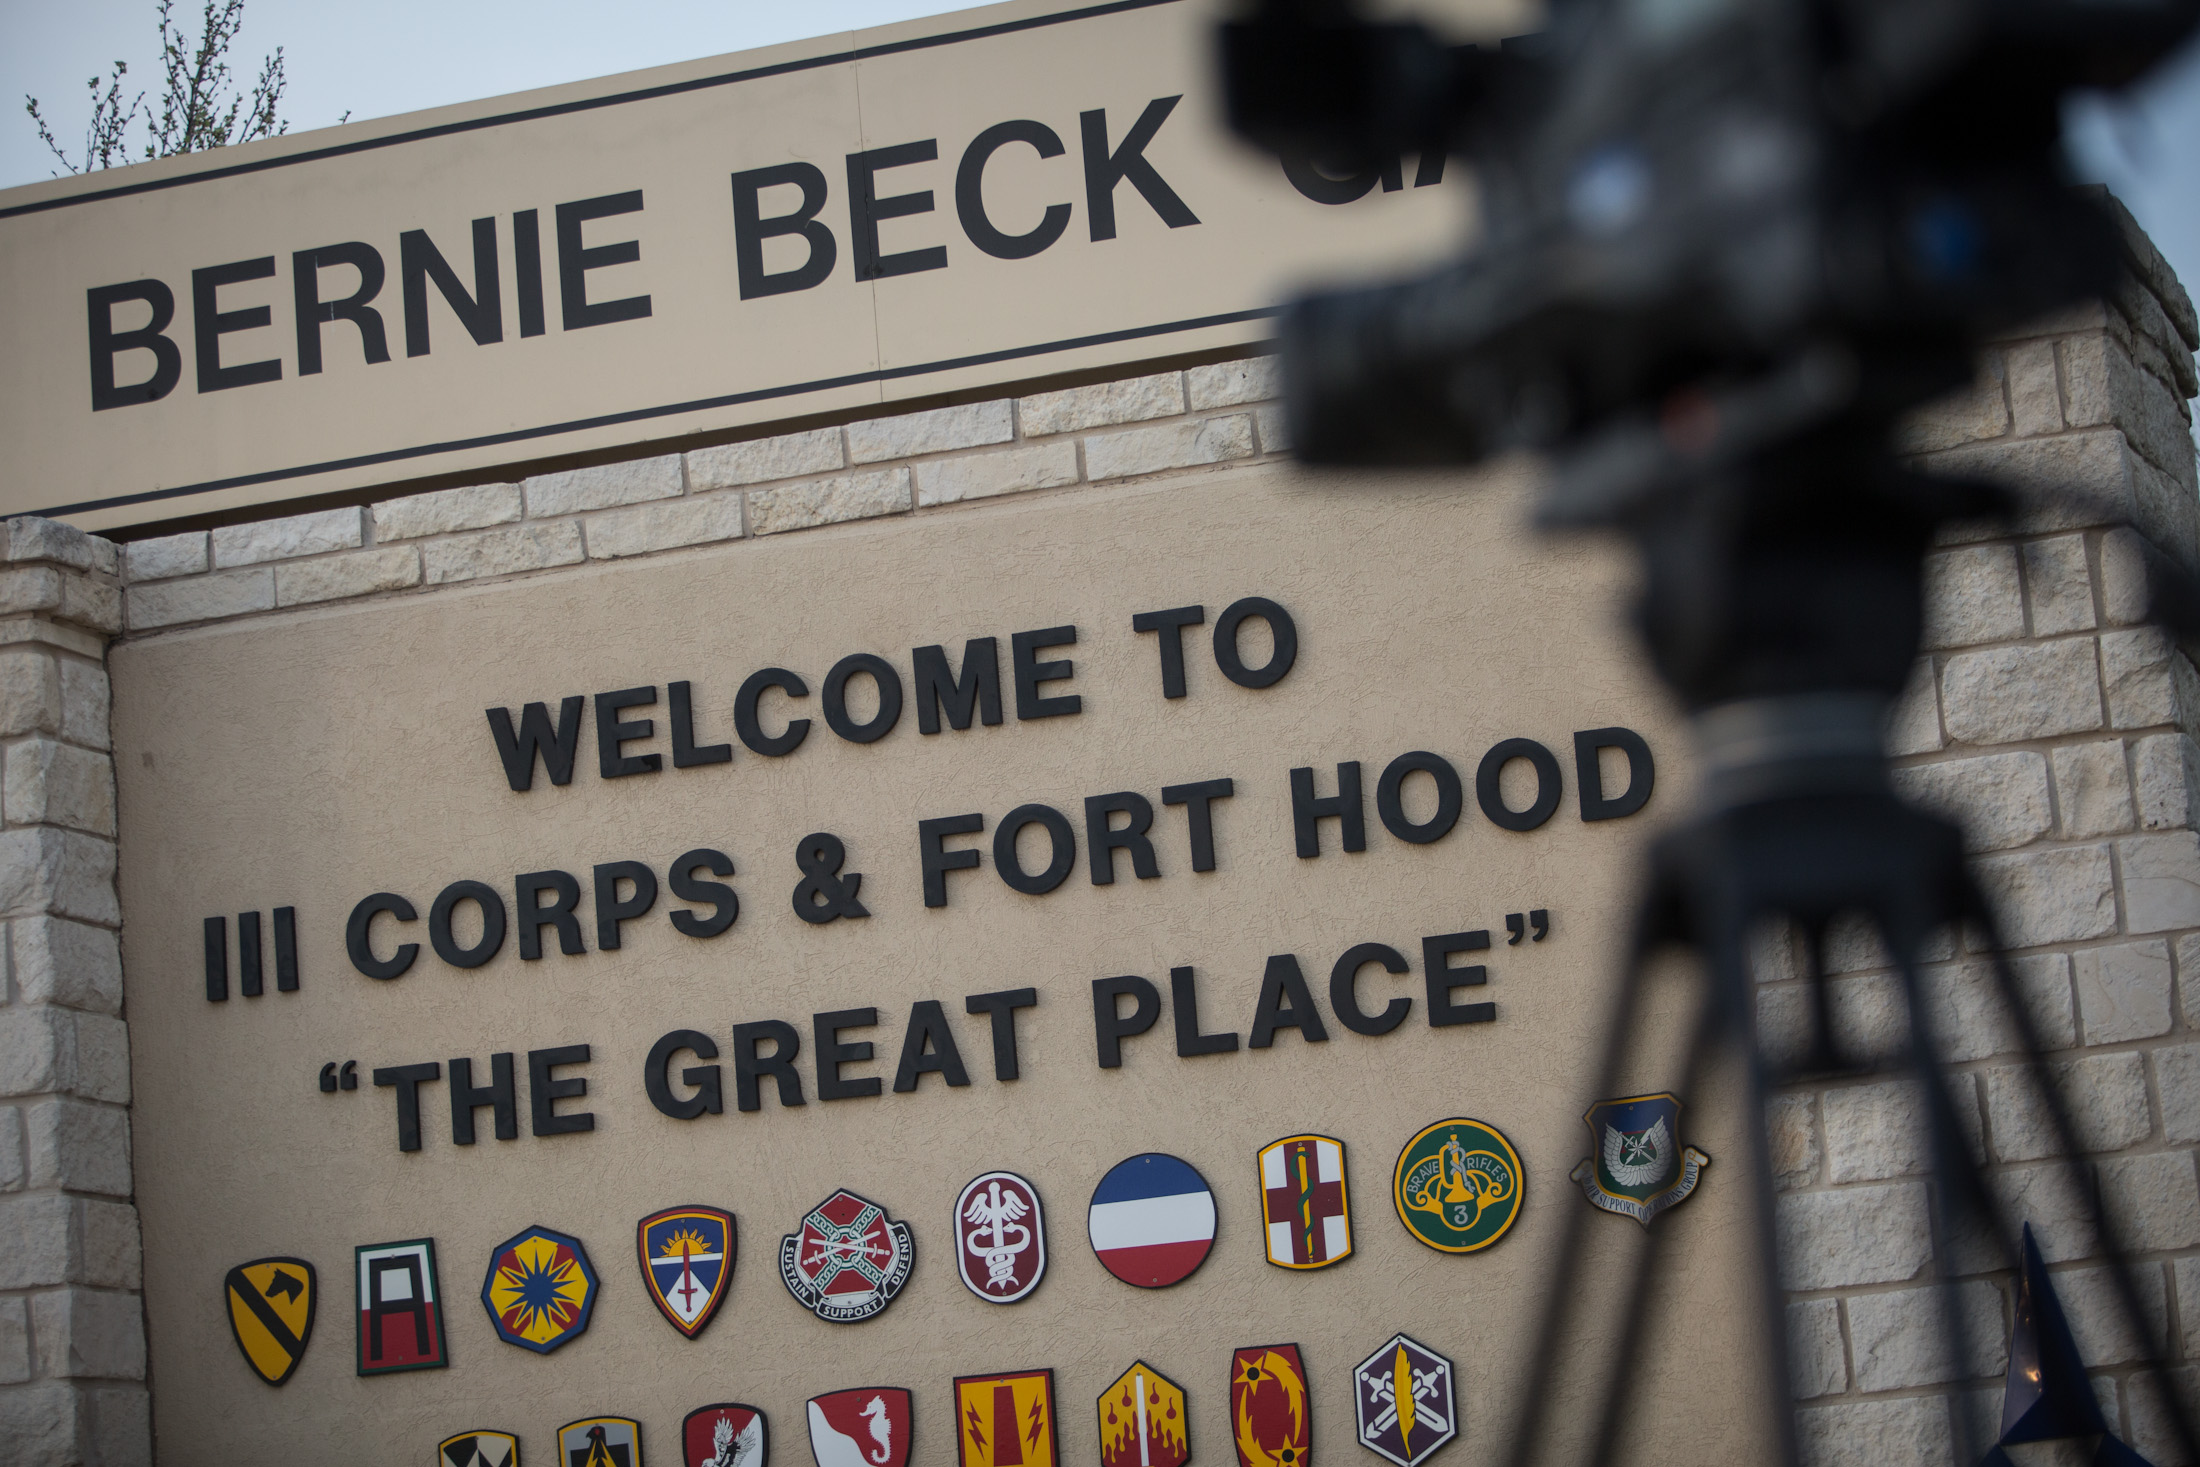 Members of the media wait outside of the Bernie Beck Gate, an entrance to the Fort Hood military base, for updates on a shooting that occurred inside on Wednesday, April 2, 2014, in Fort Hood, Texas. (AP Photo/Tamir Kalifa)